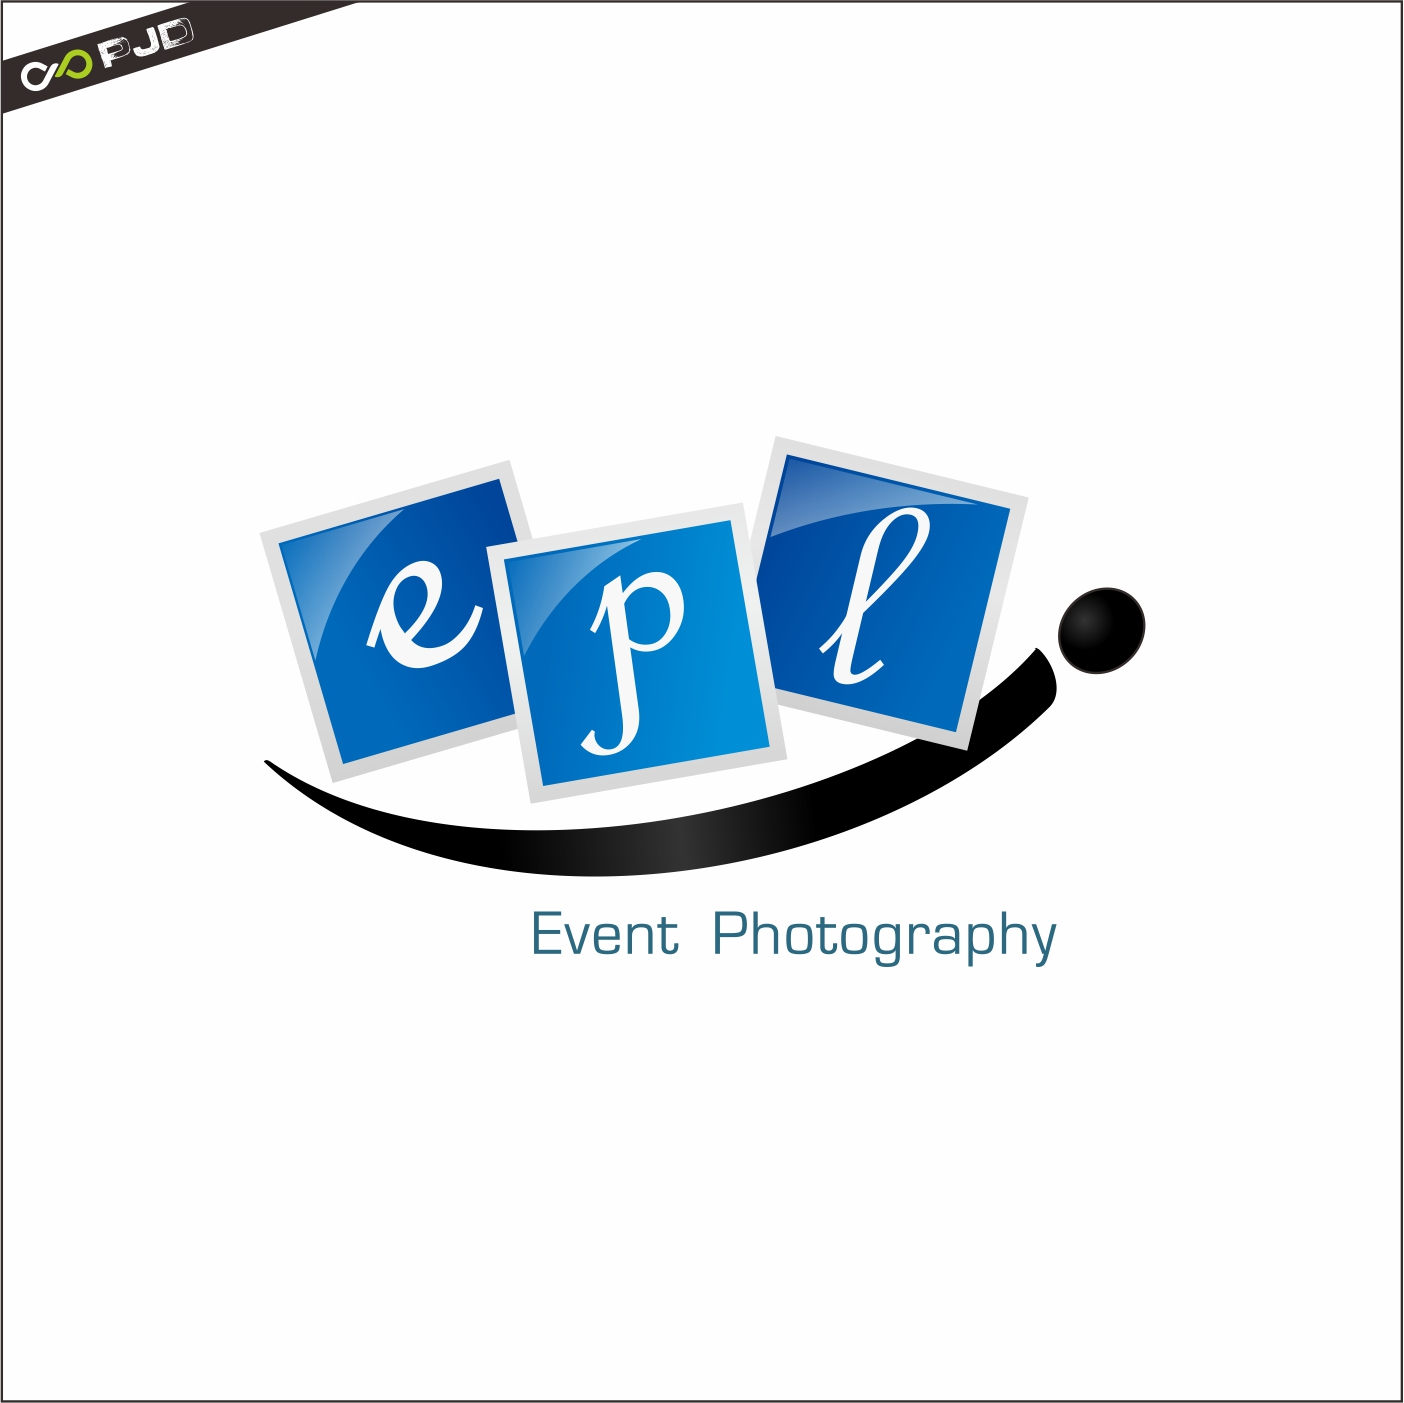 Logo Design by PJD - Entry No. 178 in the Logo Design Contest New Logo Design for EPL Event Photography.